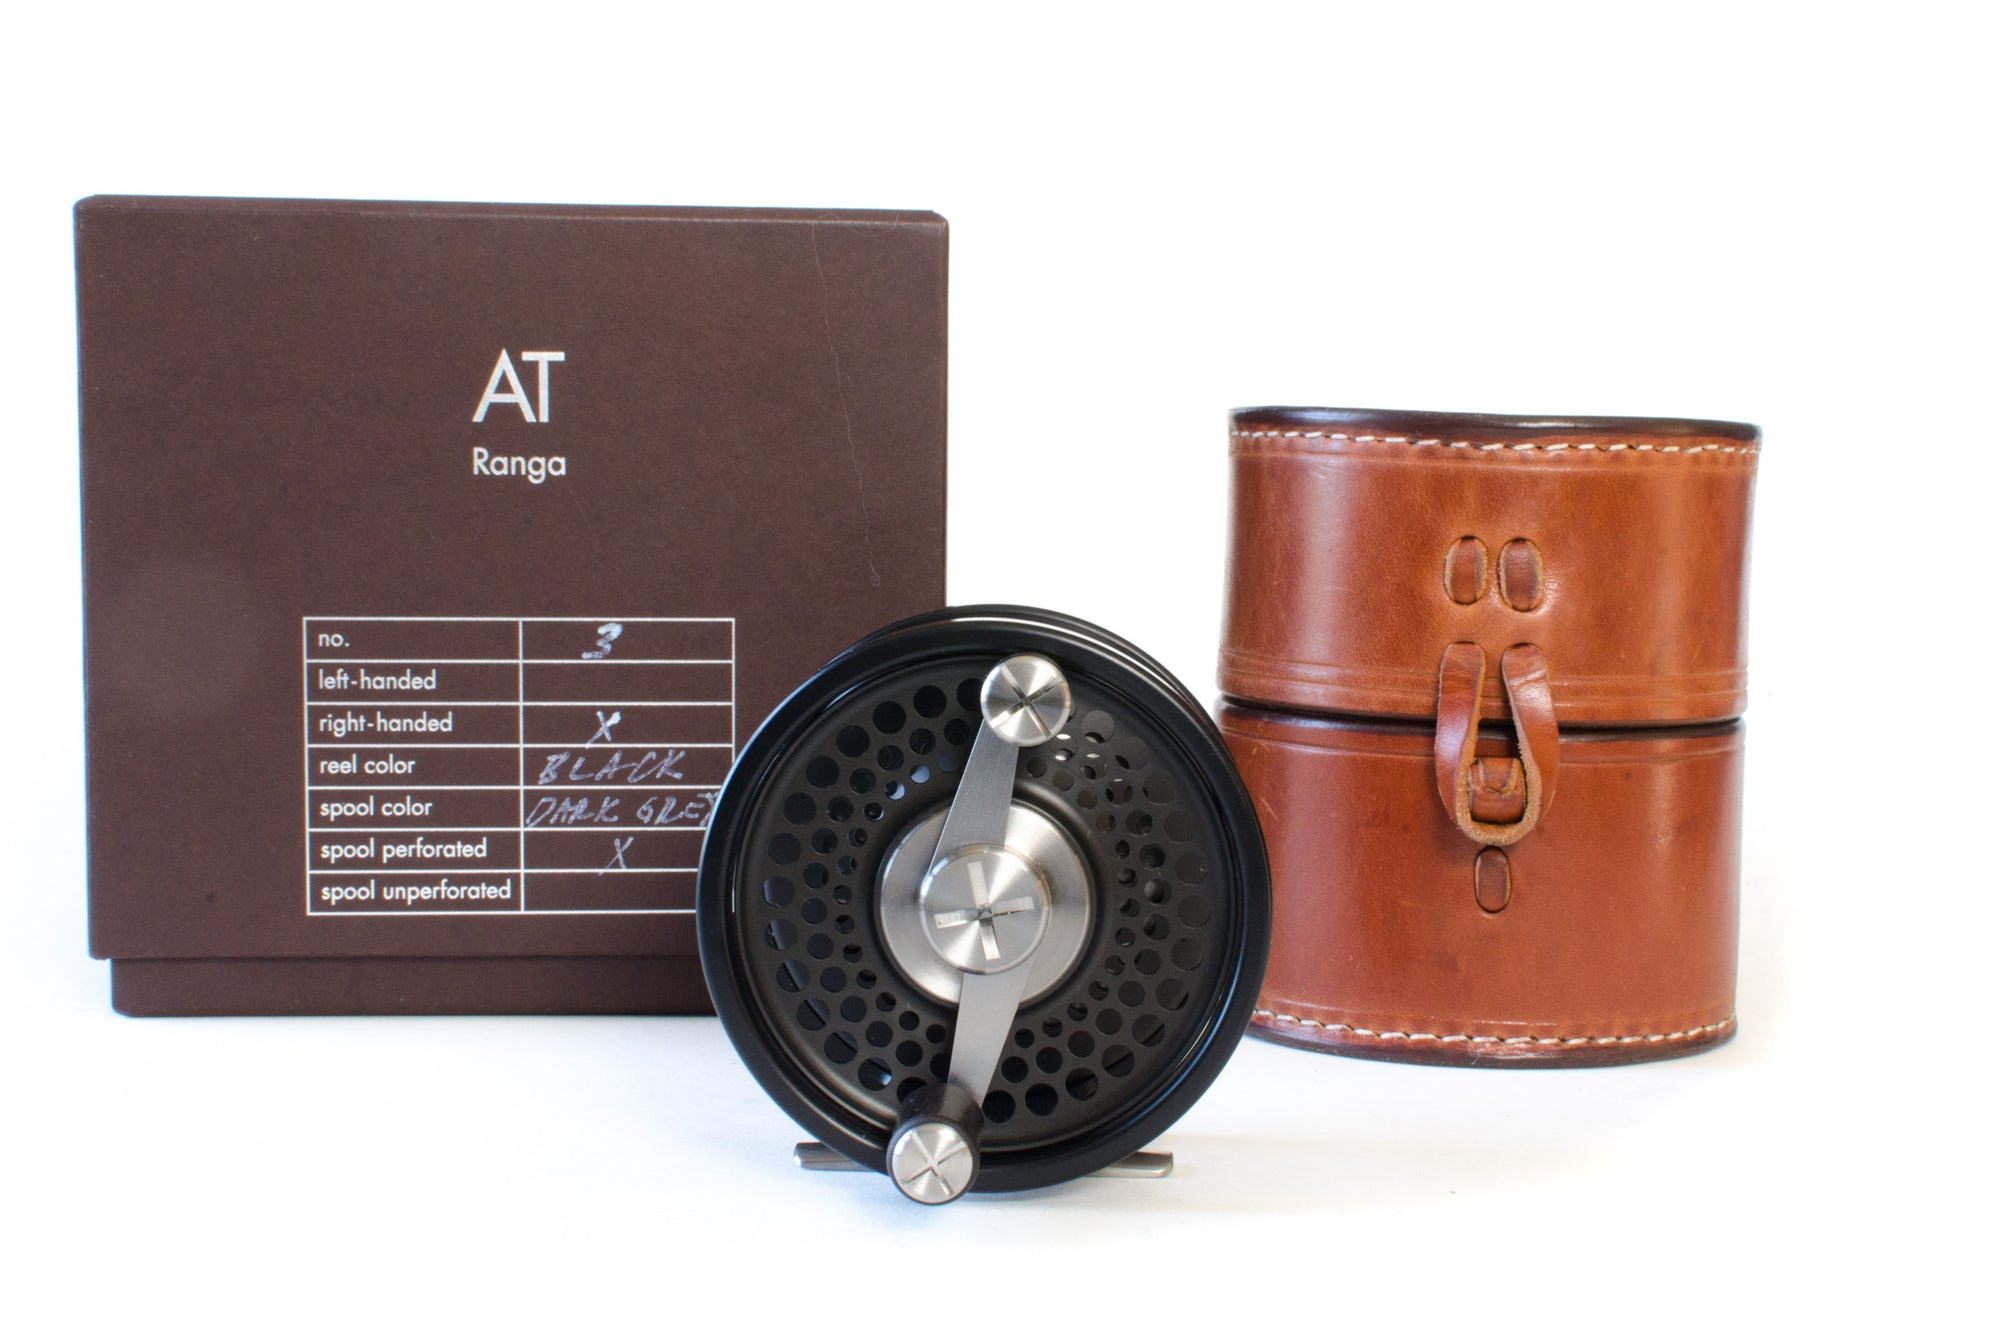 Alexander Troehler (AT) Ranga #3 Fly Reel